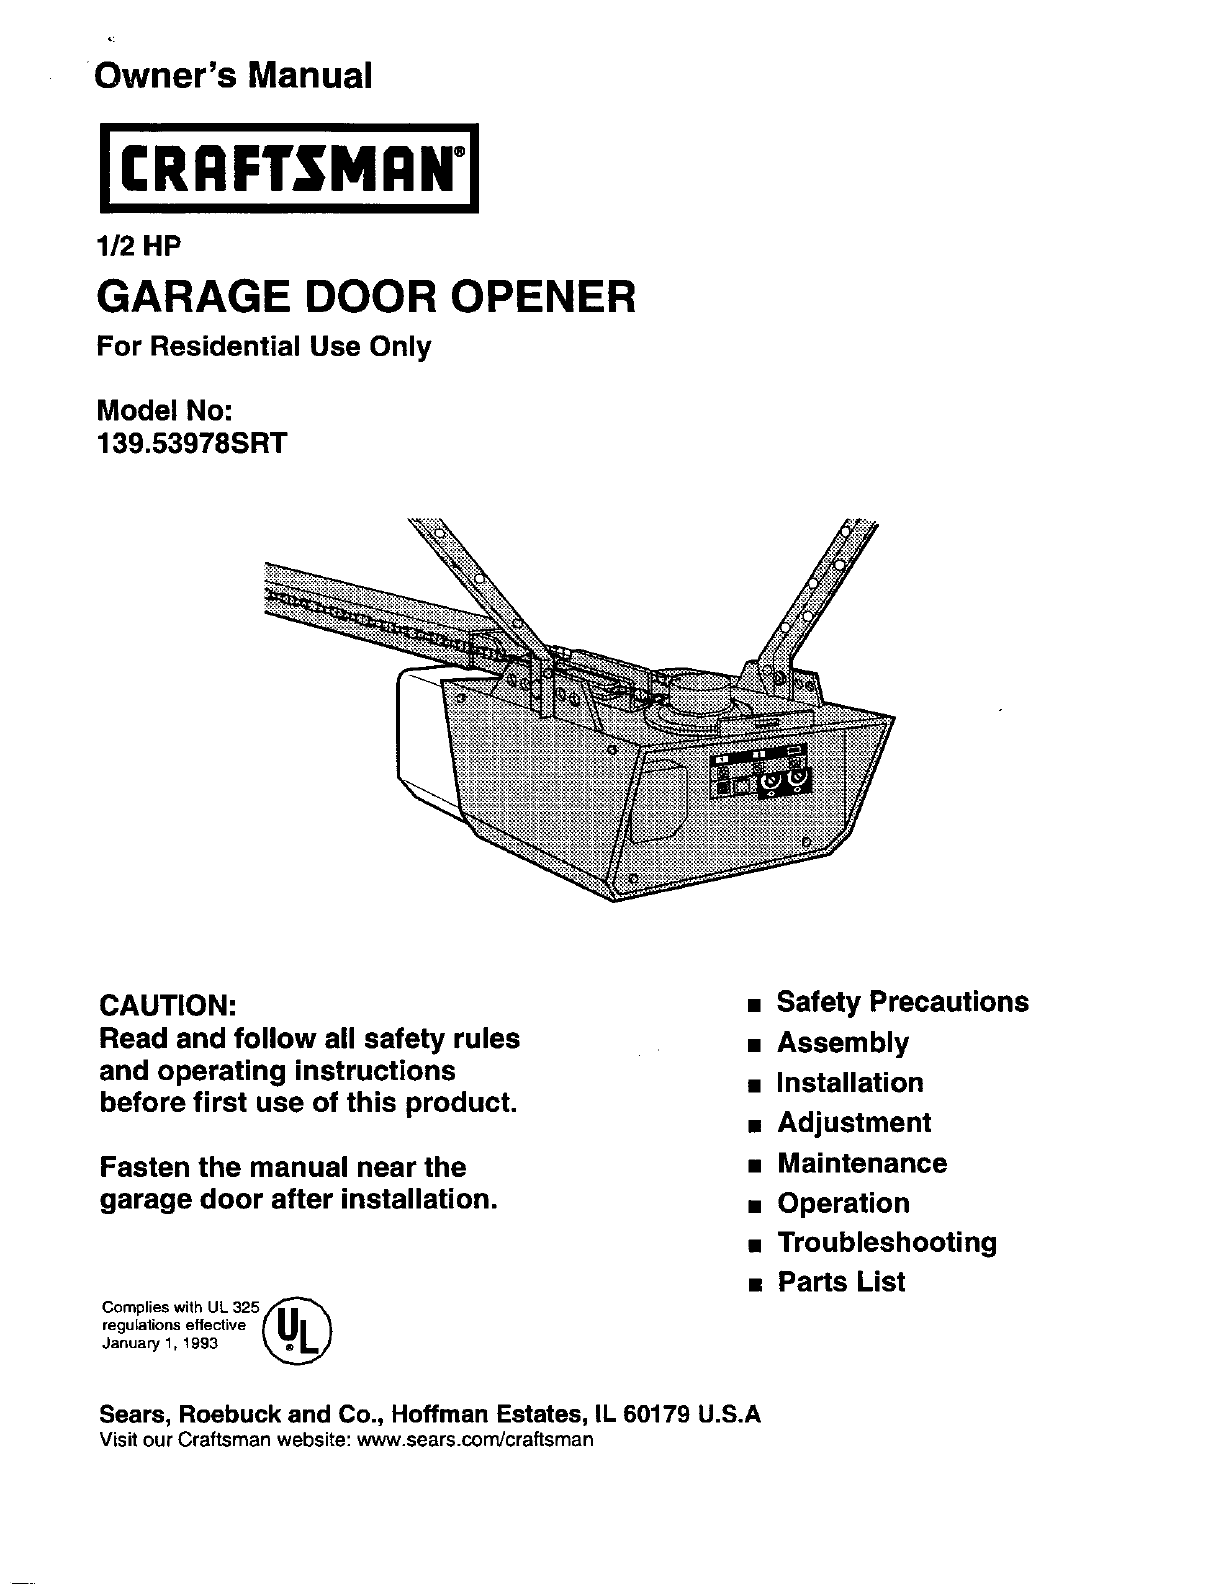 0f05b938 d0cb 4872 aeee 96ef63eab4f3 bg1 craftsman garage door opener 139 53978srt user guide craftsman garage door wiring diagram at crackthecode.co